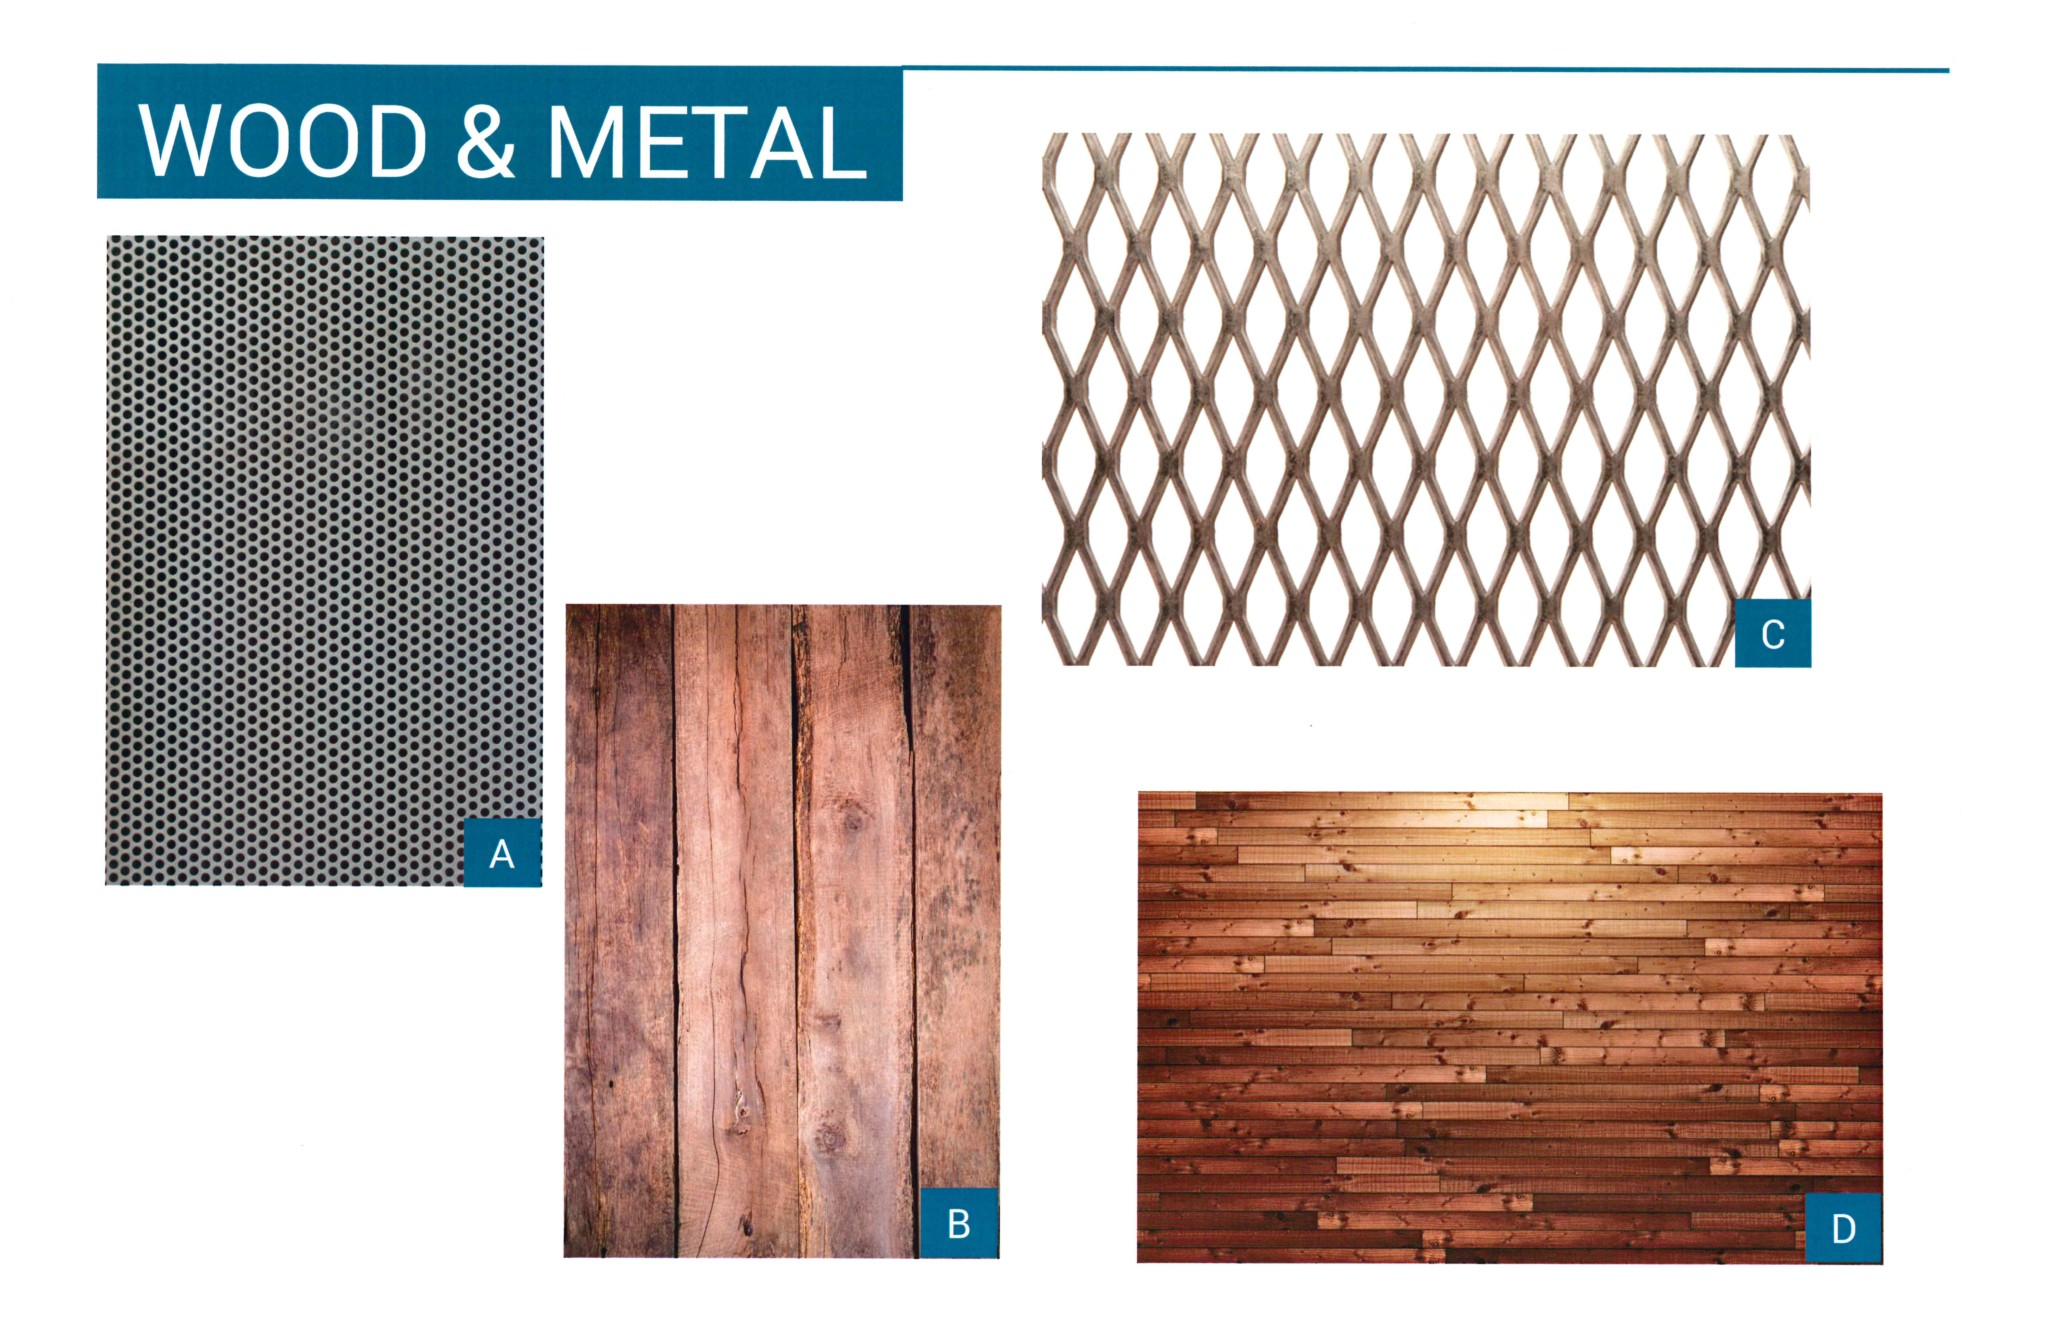 Wood and Metal Graphic